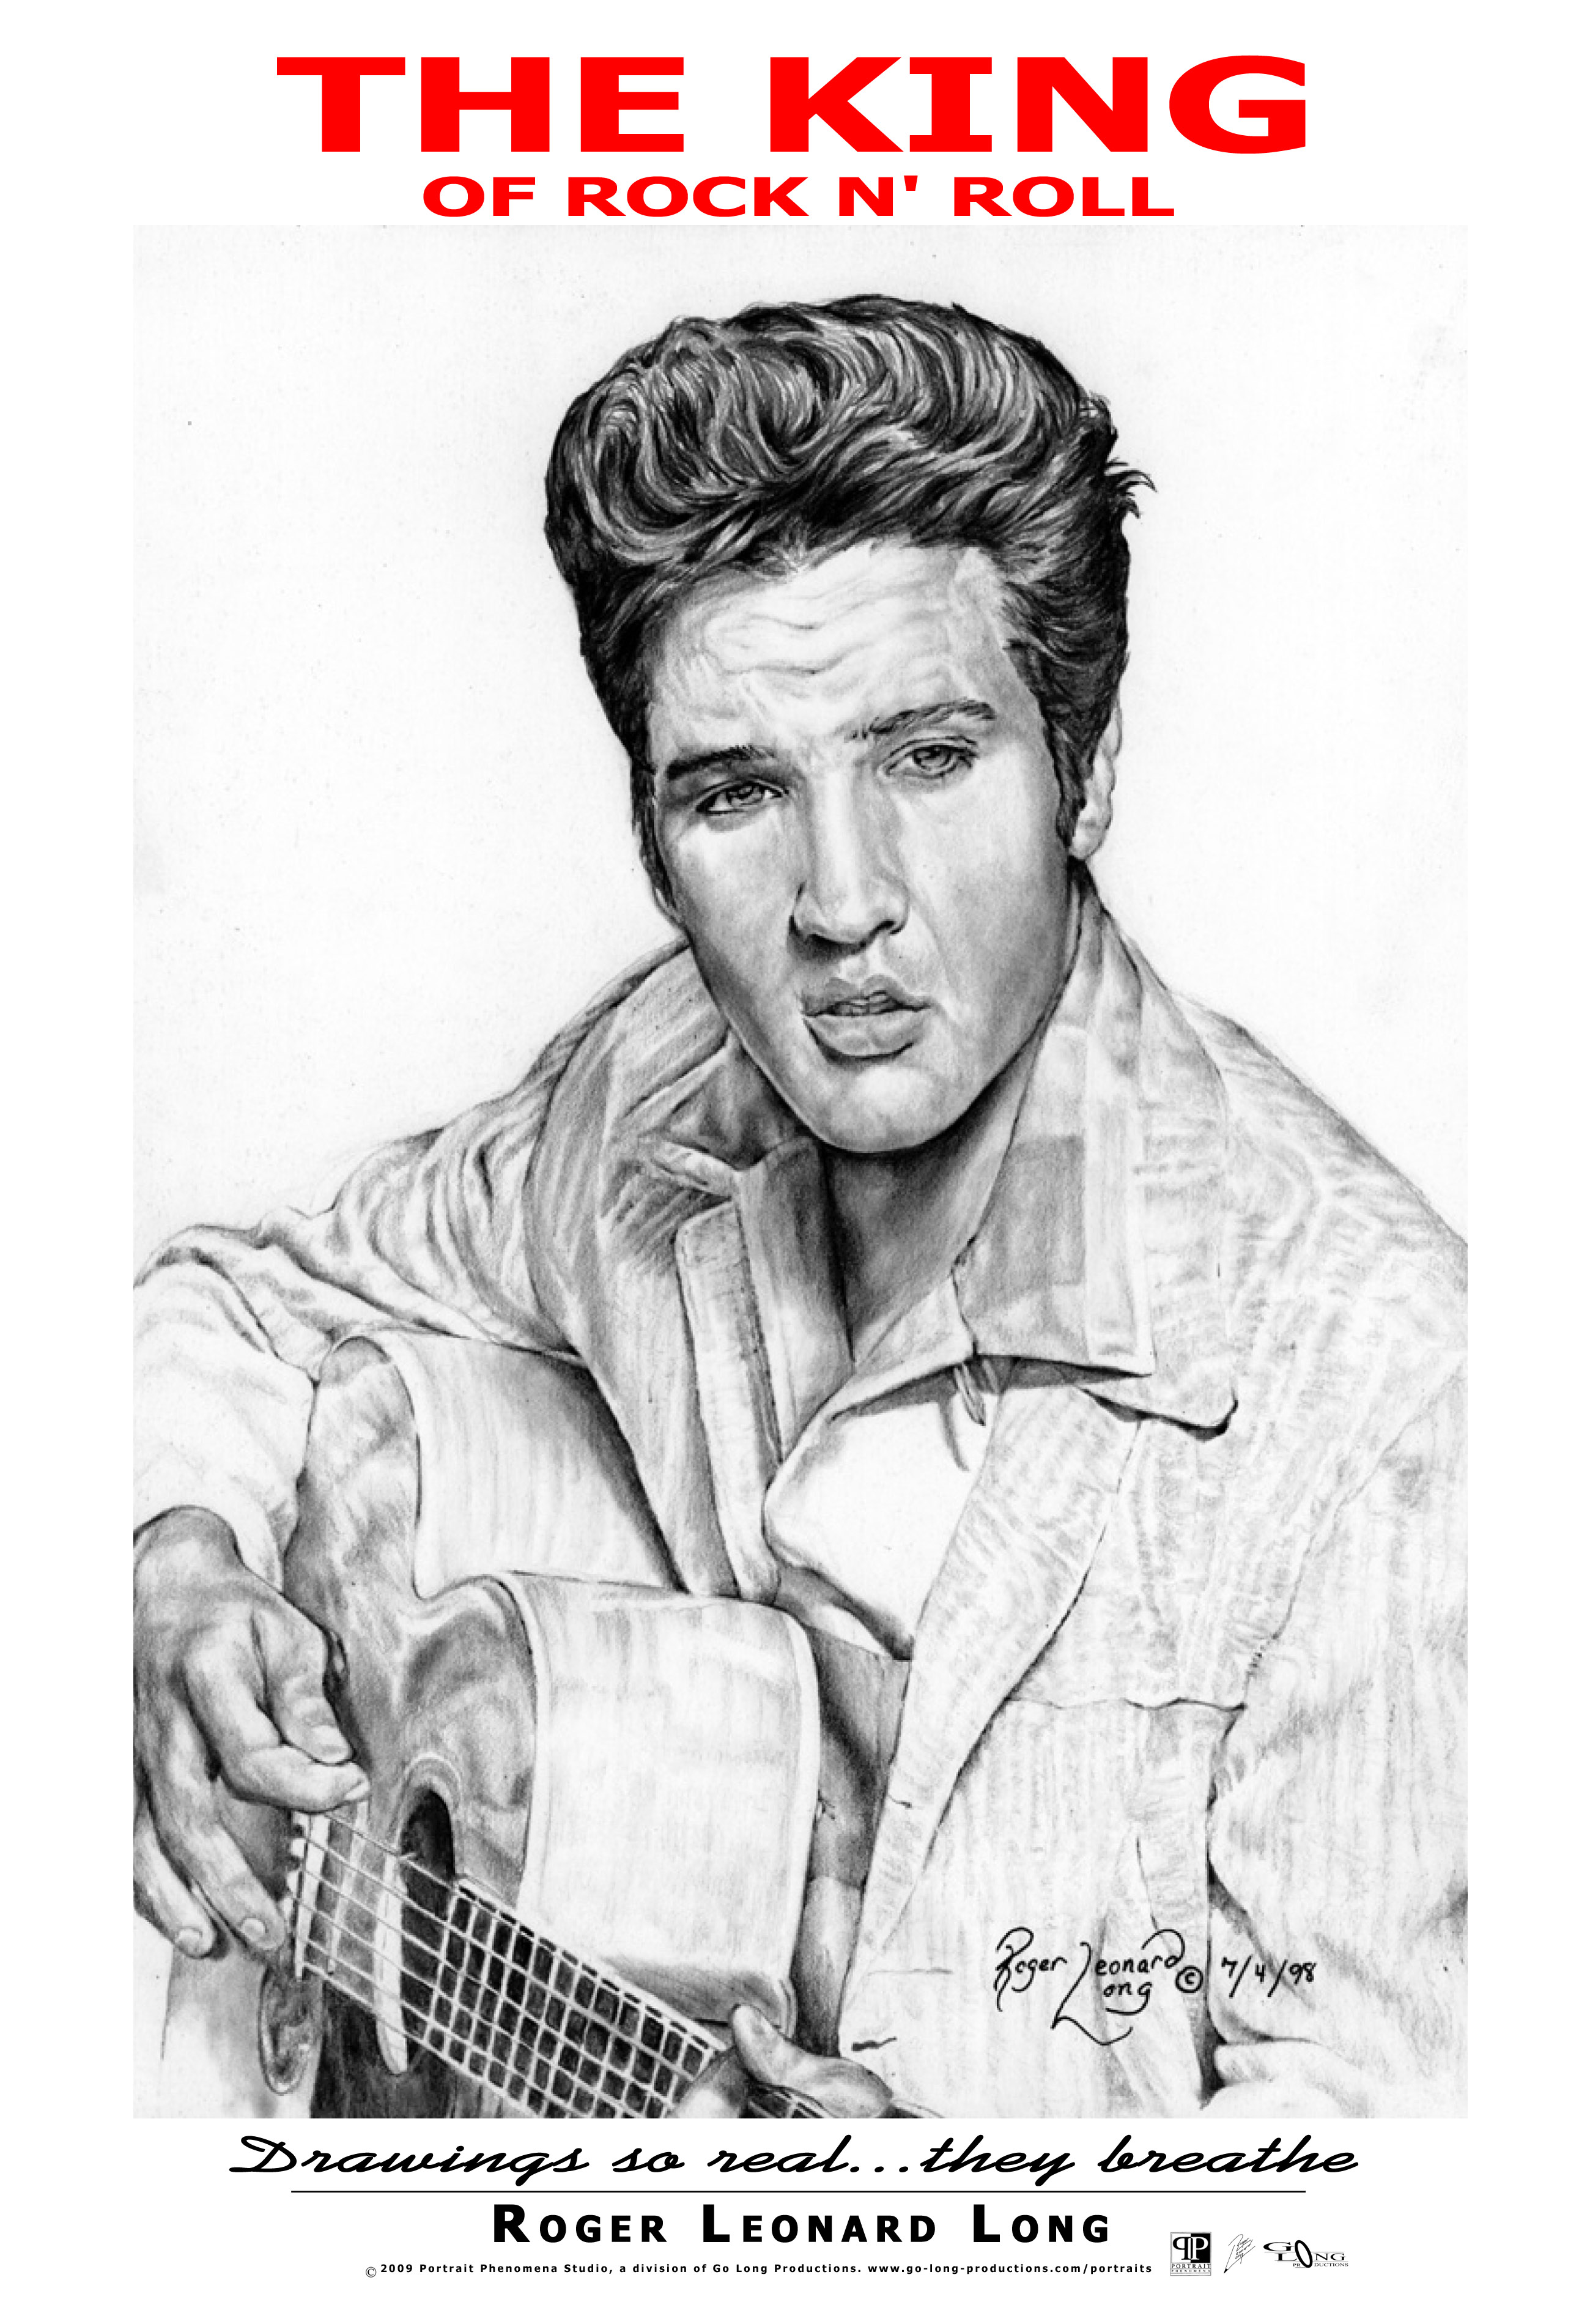 """This is an exclusive original poster from Roger Leonard Long. It features his photo realistic portrait drawing of Elvis. The original portrait was created with pencil. It is part of the artist's original collection of legendary cultural, musical figures. This high-quality poster captures the realism of that original work and of the man who is known today as the """"king of rock n' roll."""" The poster is delivered securely and ready for easy framing/mounting."""